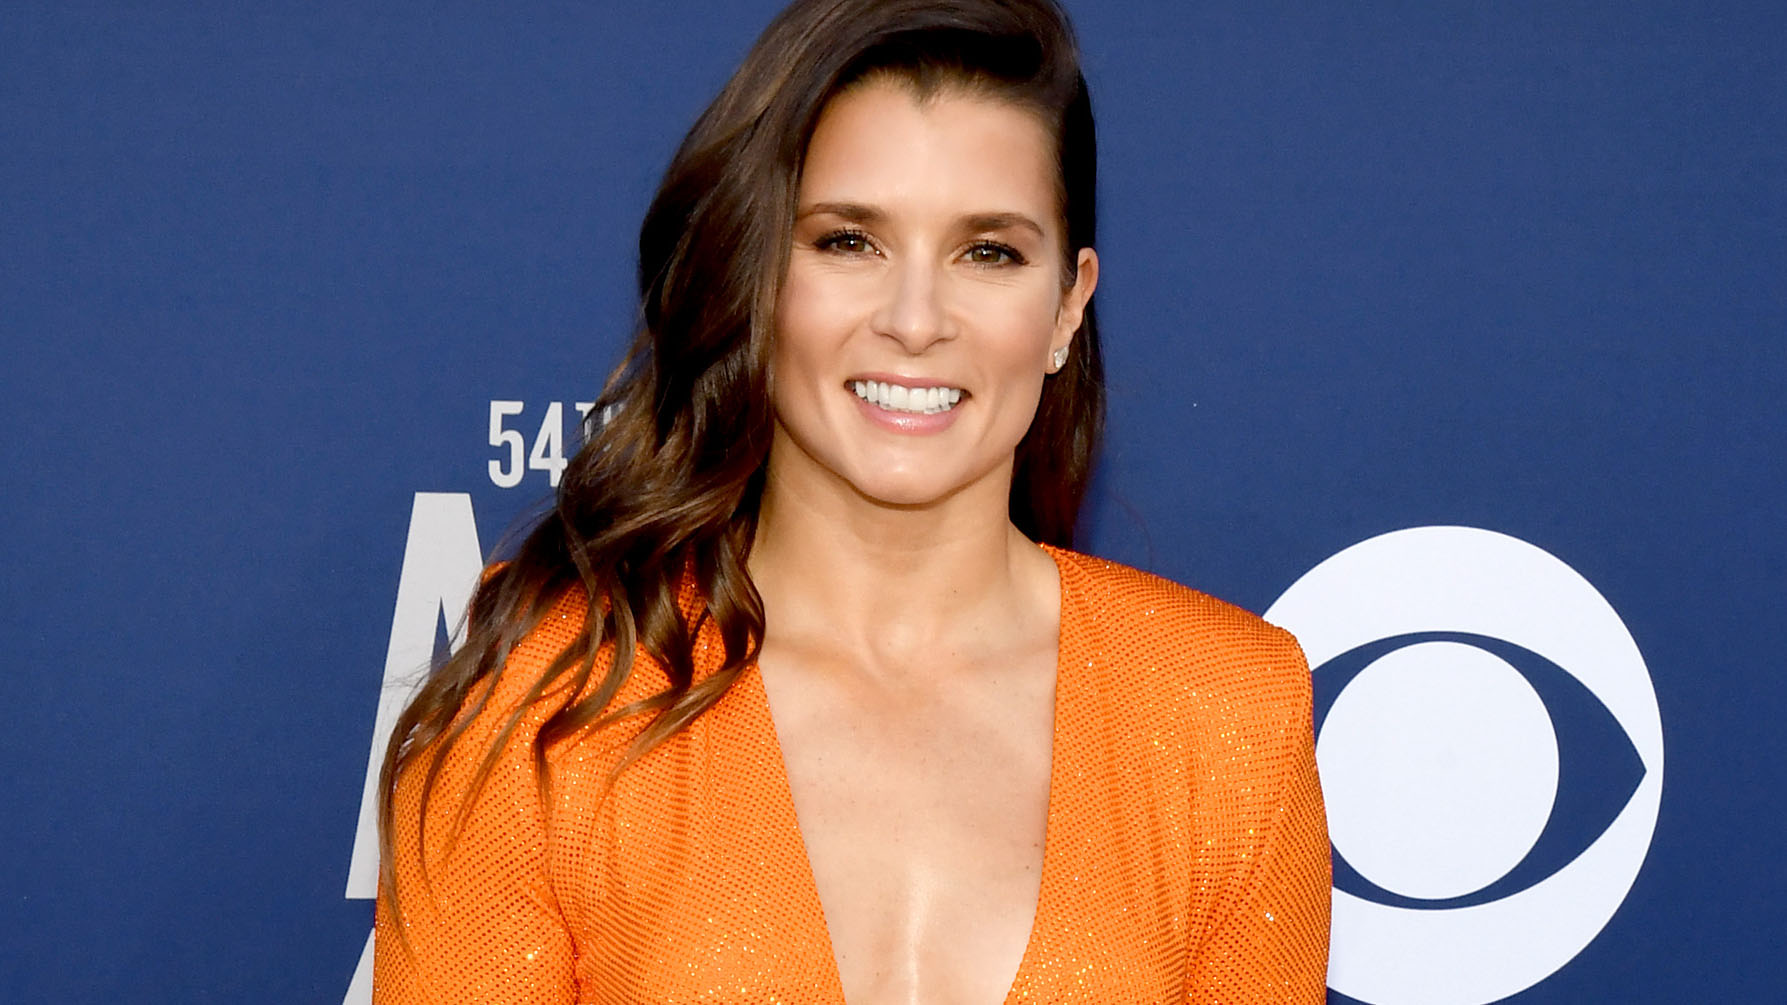 Danica Patrick kisses new man Carter Comstock in adorable beach pics - Fox News